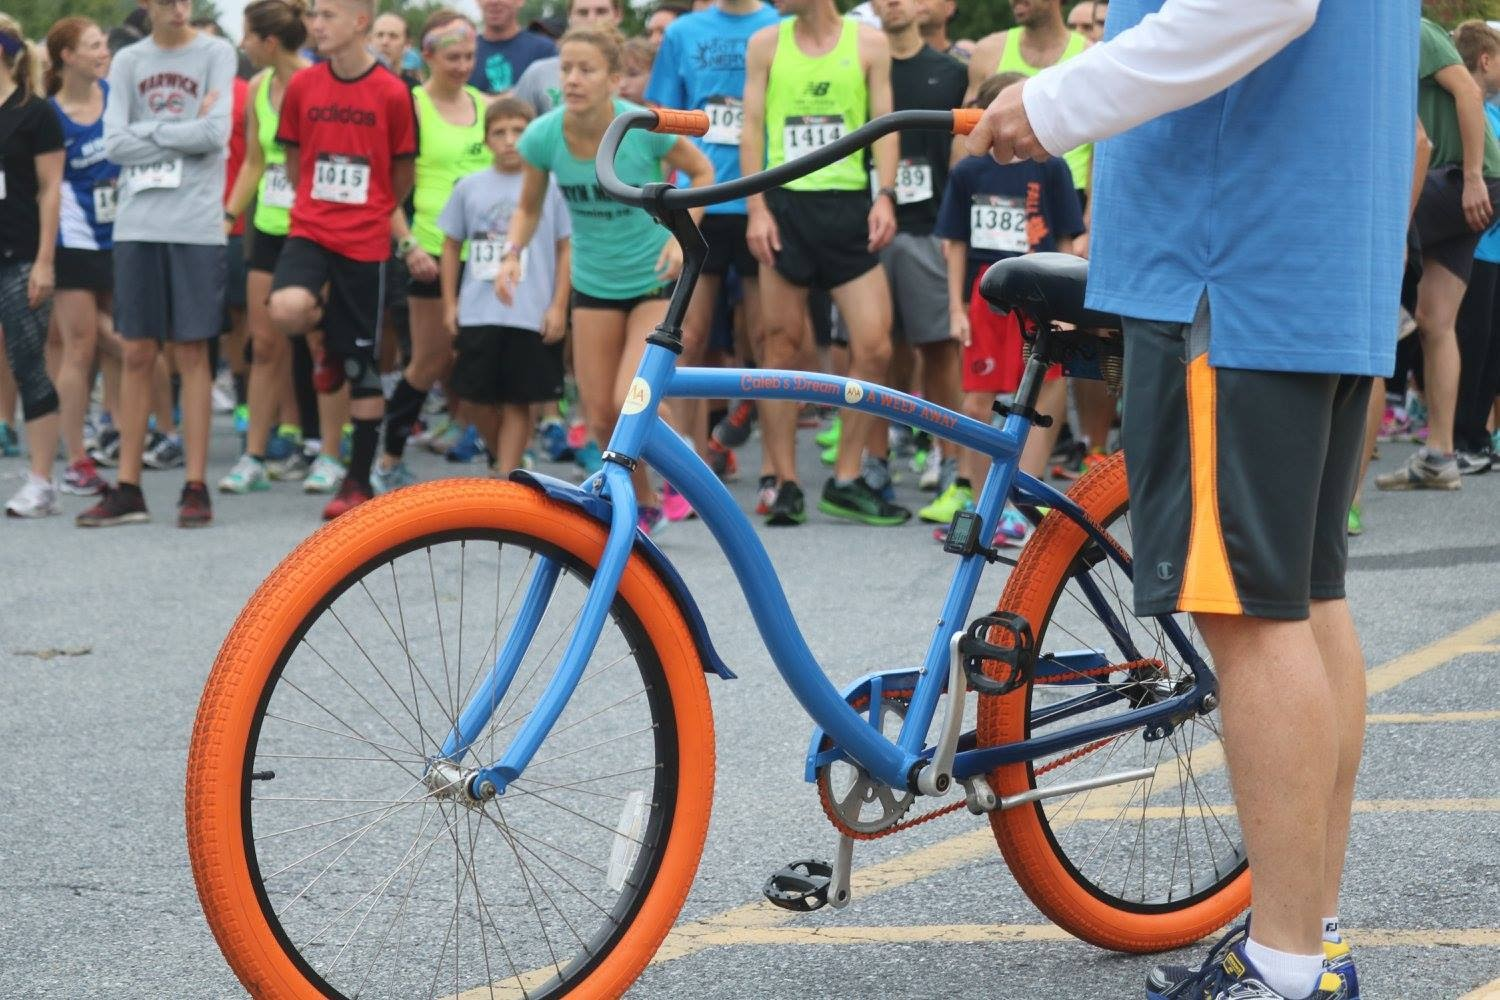 Caleb's Dream Bike at The HARTZ Physical Therapy Fall Blast 5k in 2016